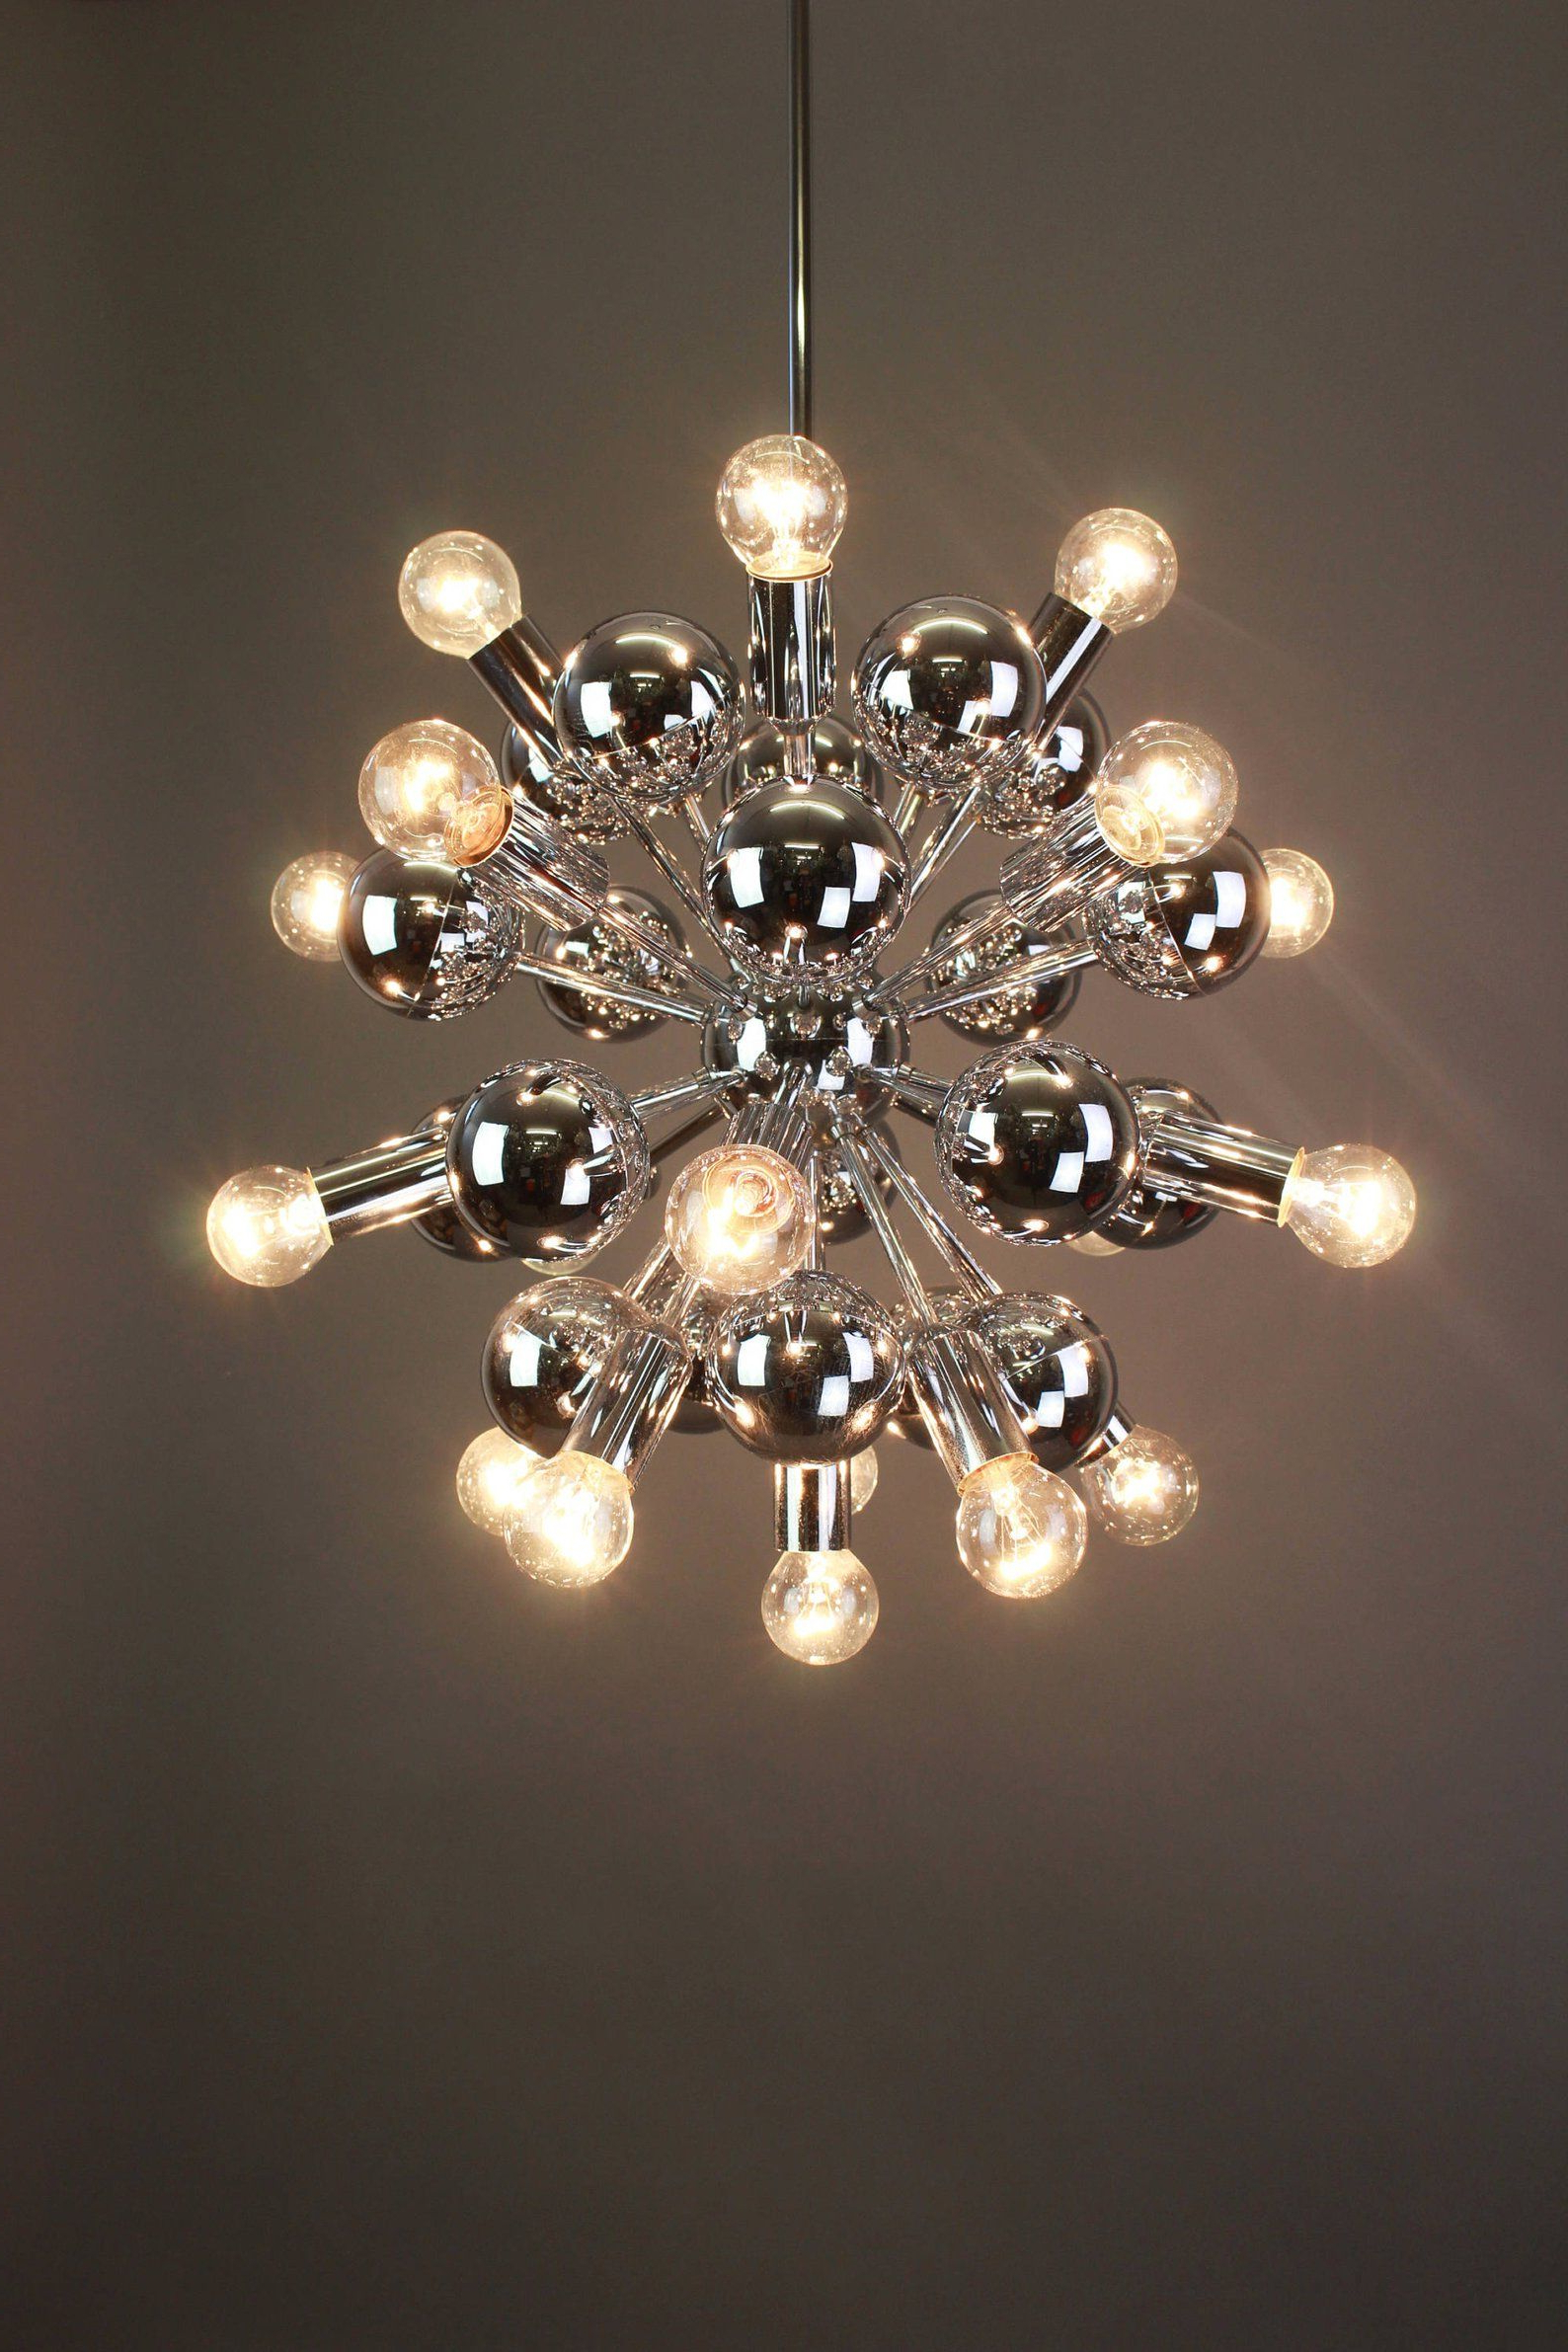 Best and Newest Asher 12-Light Sputnik Chandeliers in Large Chrome Vintage Sputnik Chandeliercosack Germany